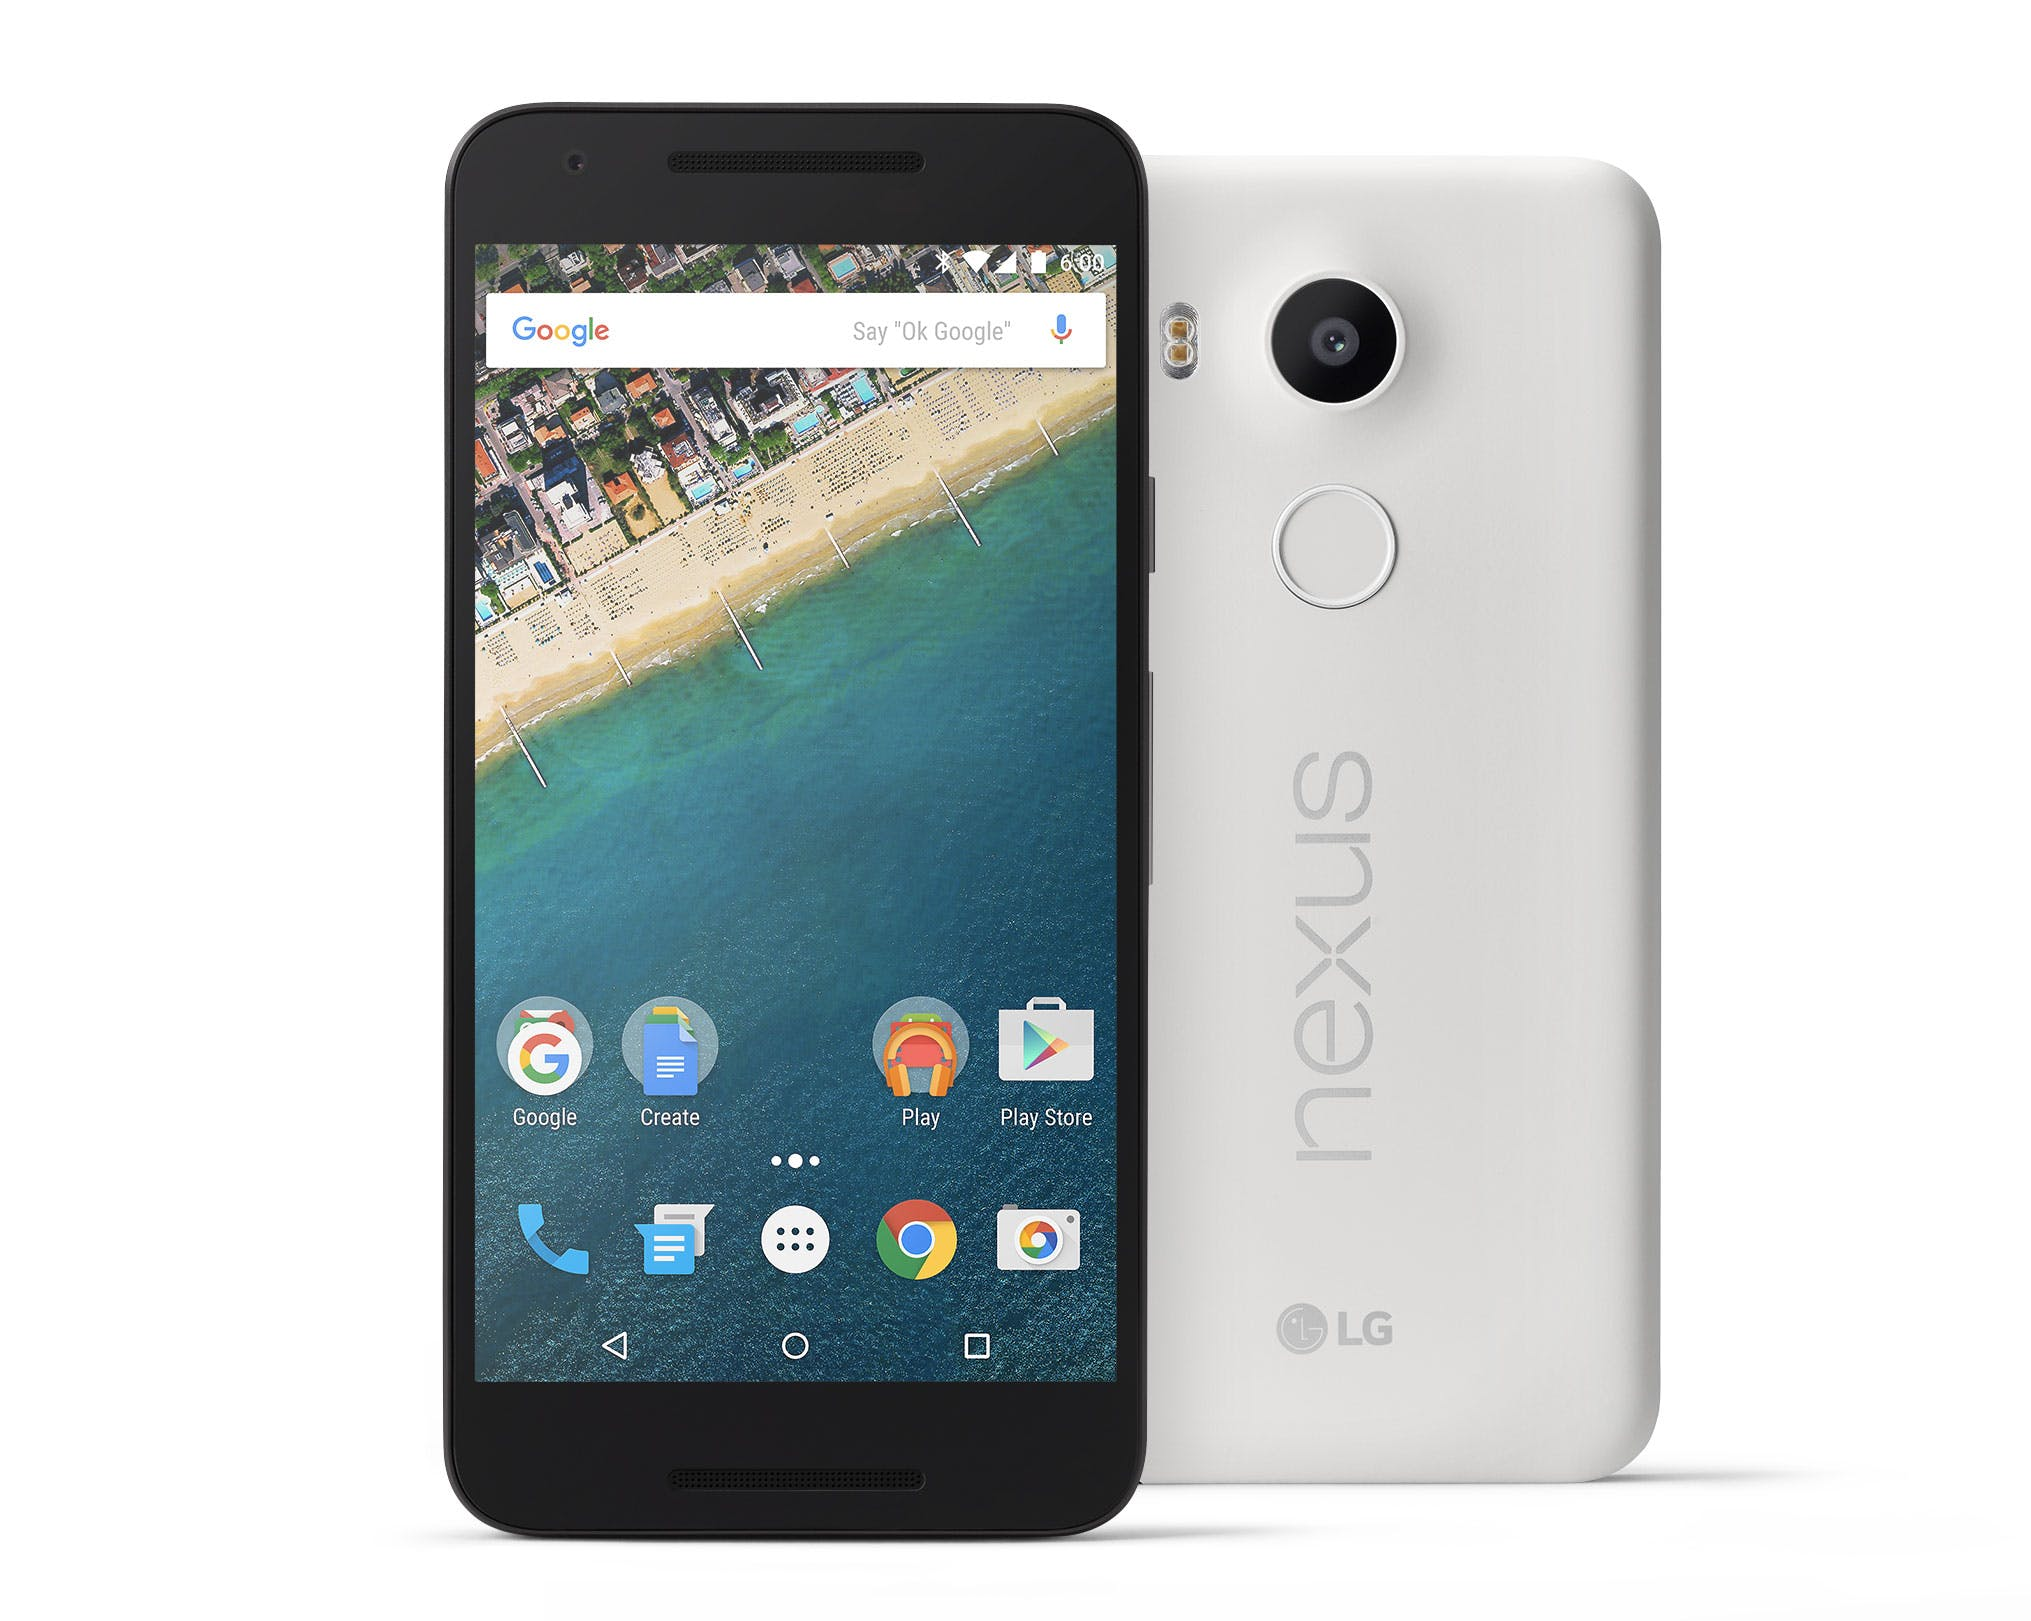 Google Nexus 5X publicly revealed